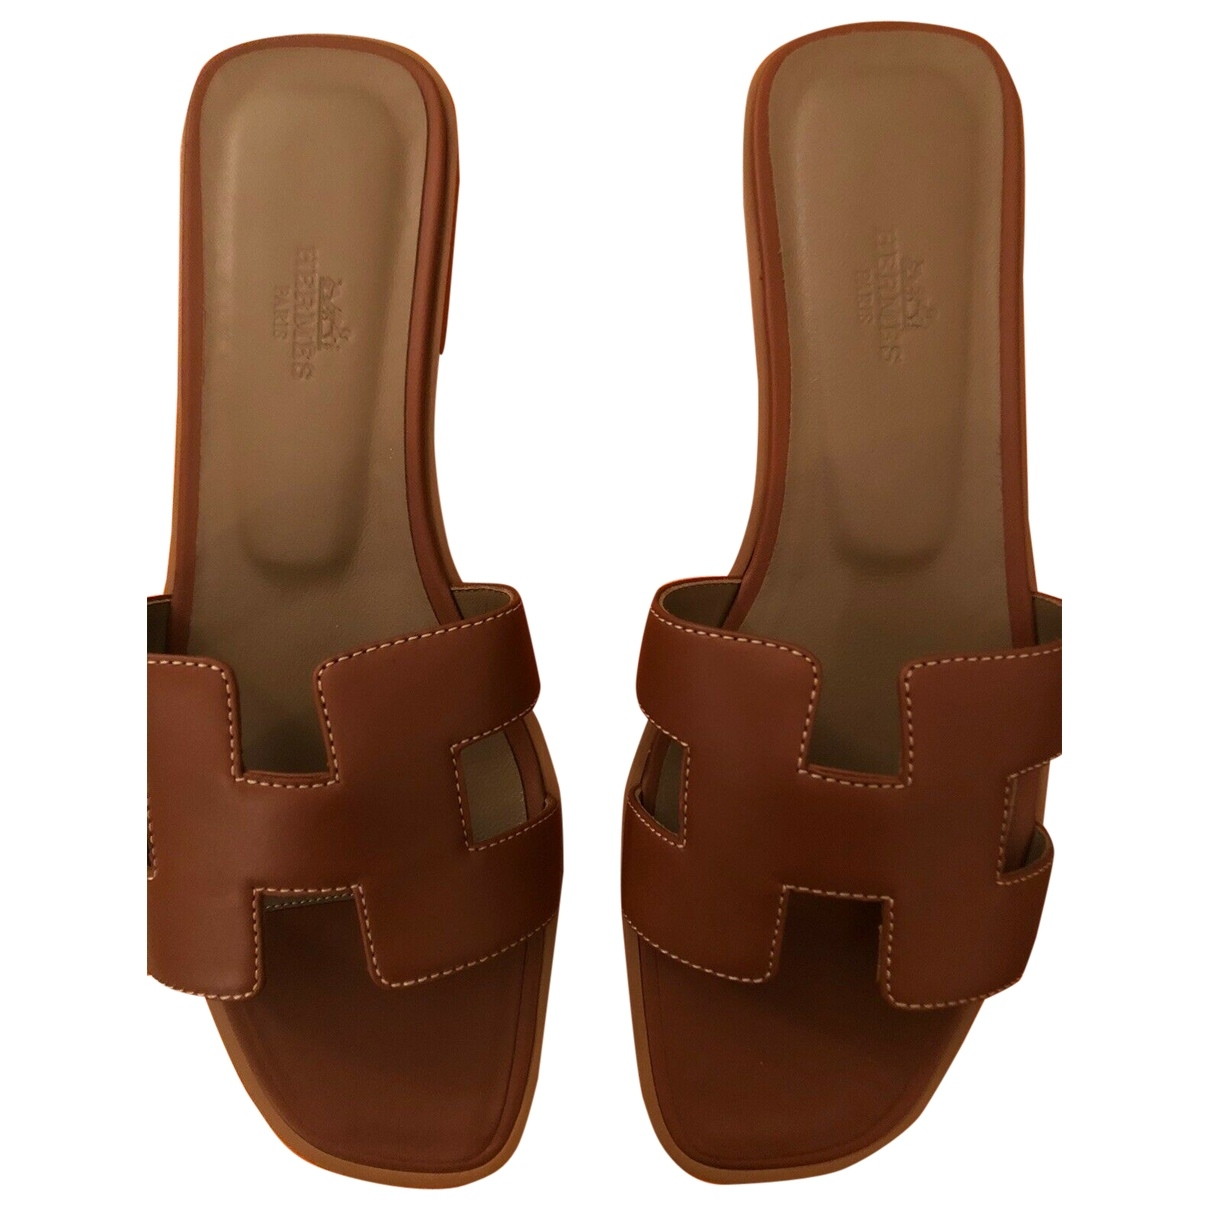 Hermès Oran Brown Leather Sandals for Women 39 EU